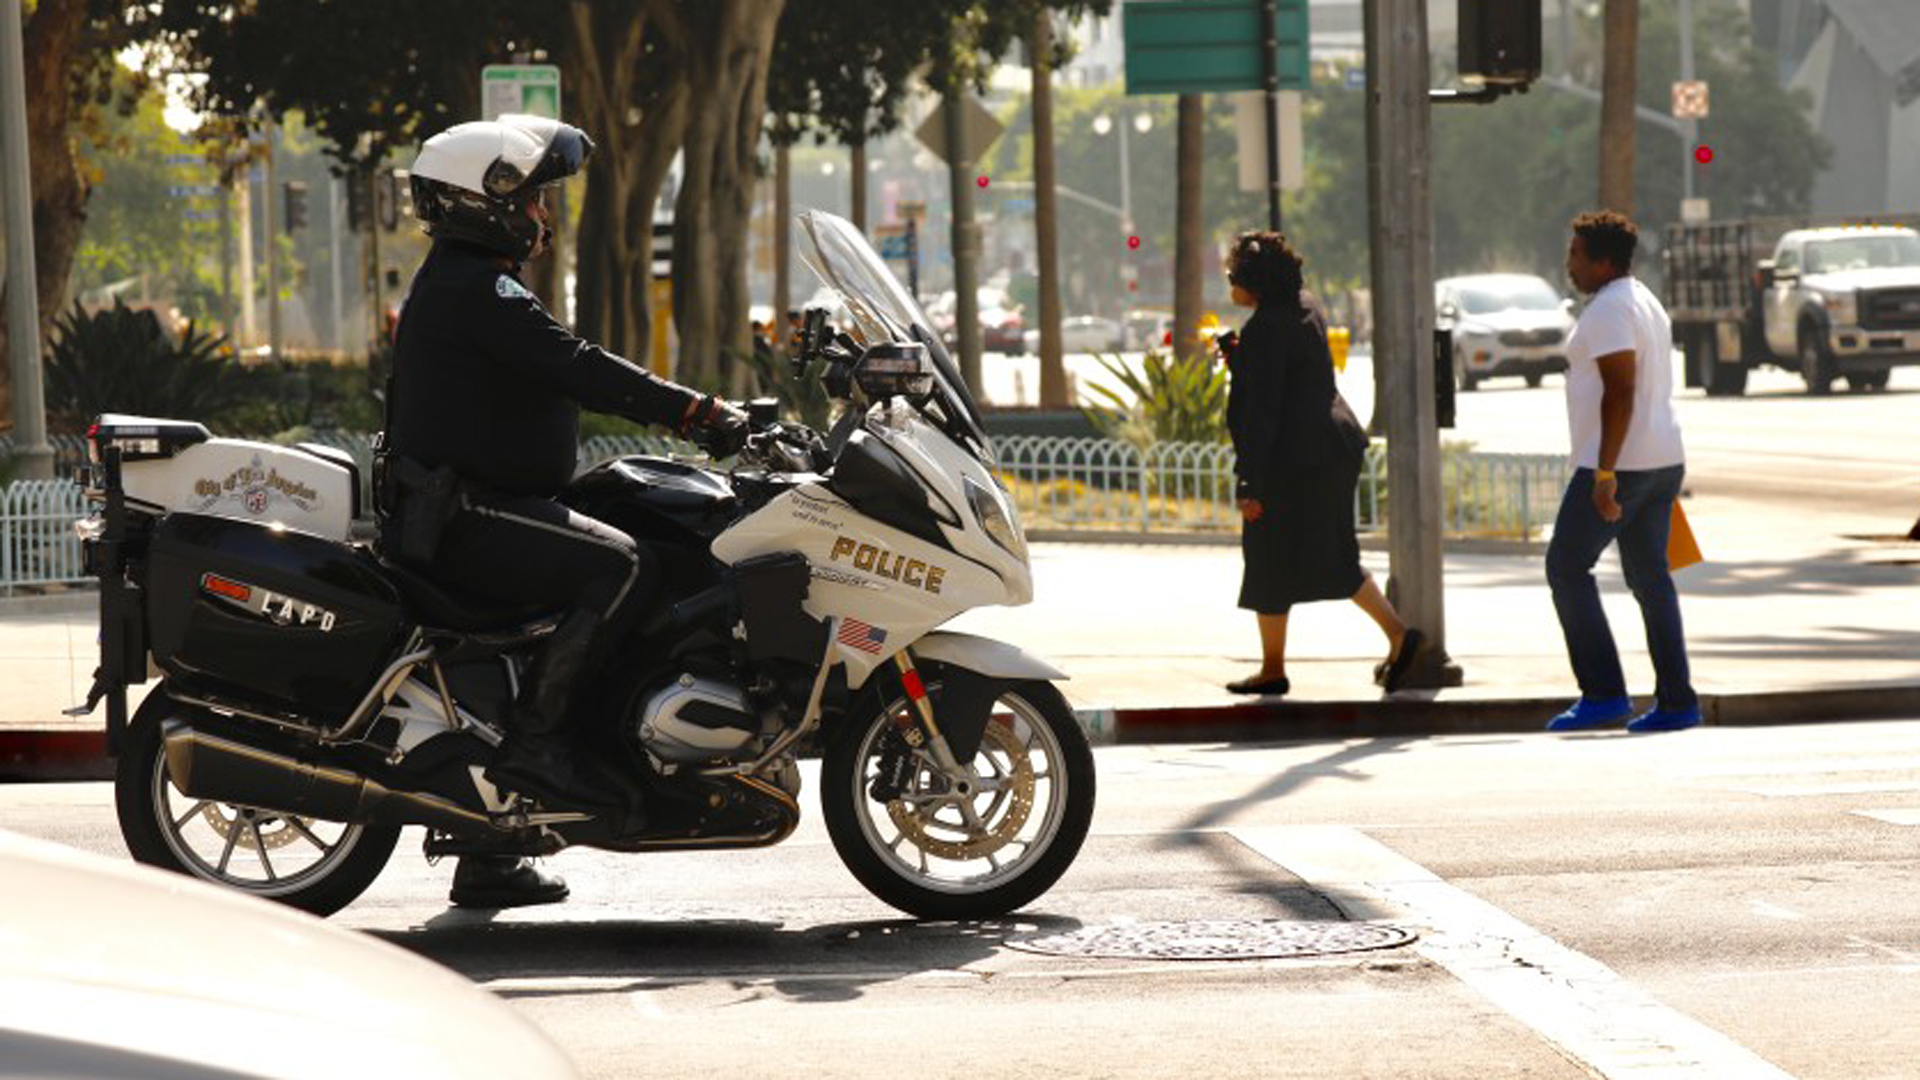 The LAPD has increased patrols each morning and afternoon in the Civic Center area after government employees raised concerns about safety entering and leaving work.(Credit: Al Seib / Los Angeles Times)